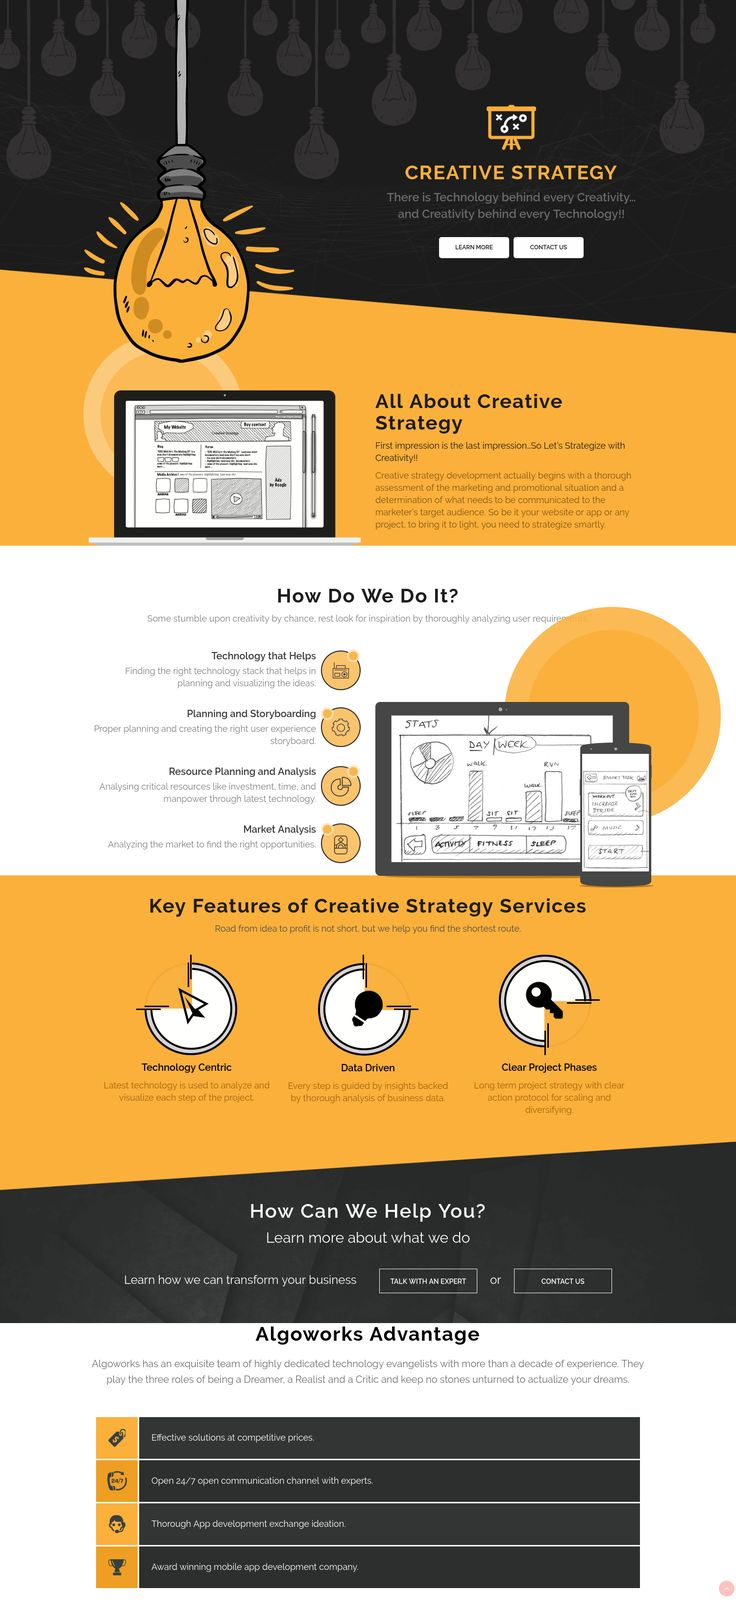 Usability and the mobile web a lita guide ebook ebook by 9781442263345 rakuten kobo array 21 best testing and qa images on pinterest software testing rh pinterest com fandeluxe Image collections